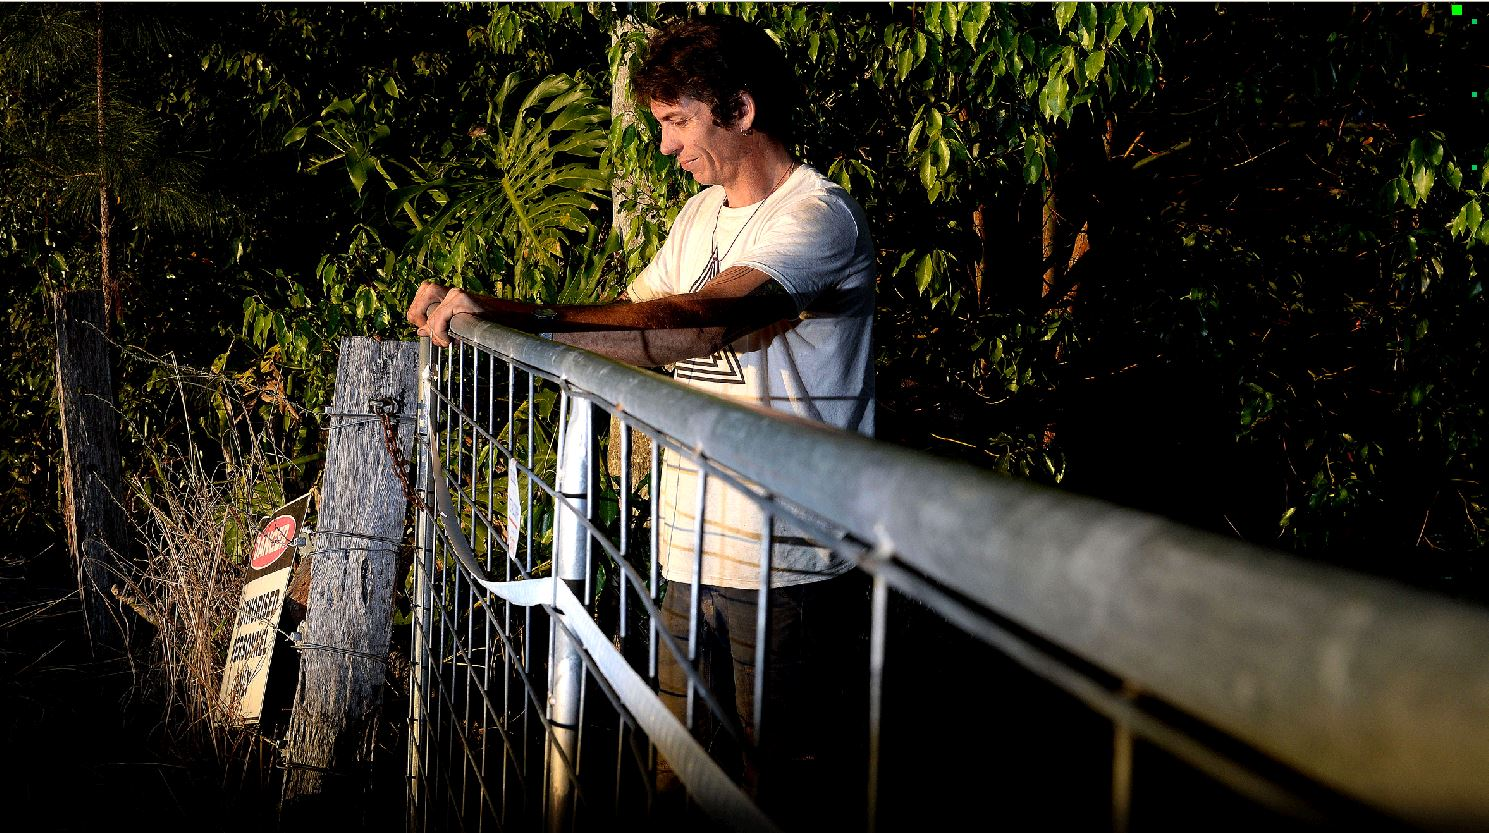 HAPPY TO BE ALIVE: Mitchell Fow was struck by lightning at his Mullumbimby property during Wednesday night's storm. Mireille Merlet-Shaw